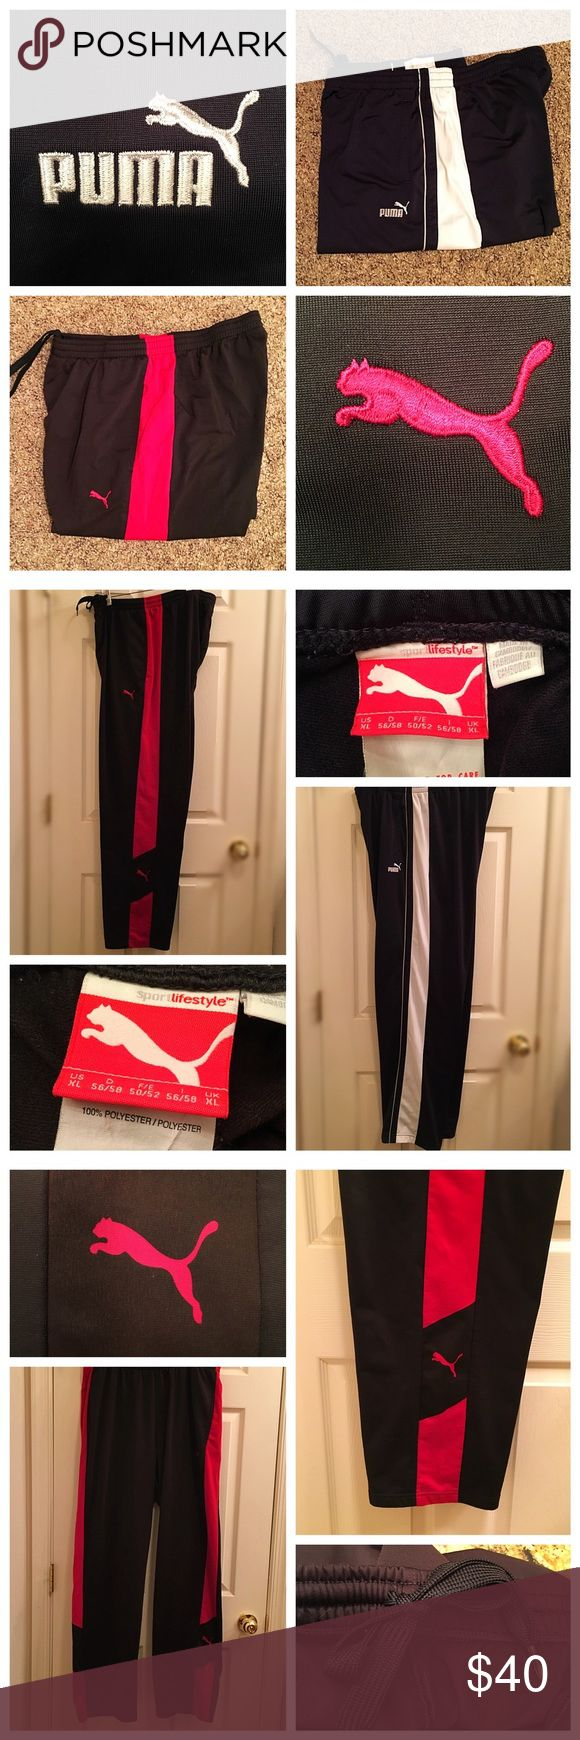 PUMA Set of 2 Men's Workout Pants Stock your gym essentials drawer with this 2 pair of sweatpants deal❣️ One is red and black and the other is white and black.  Perfect for workouts or street wear in fashionable Puma Brand Style❣️ Puma Pants Sweatpants & Joggers